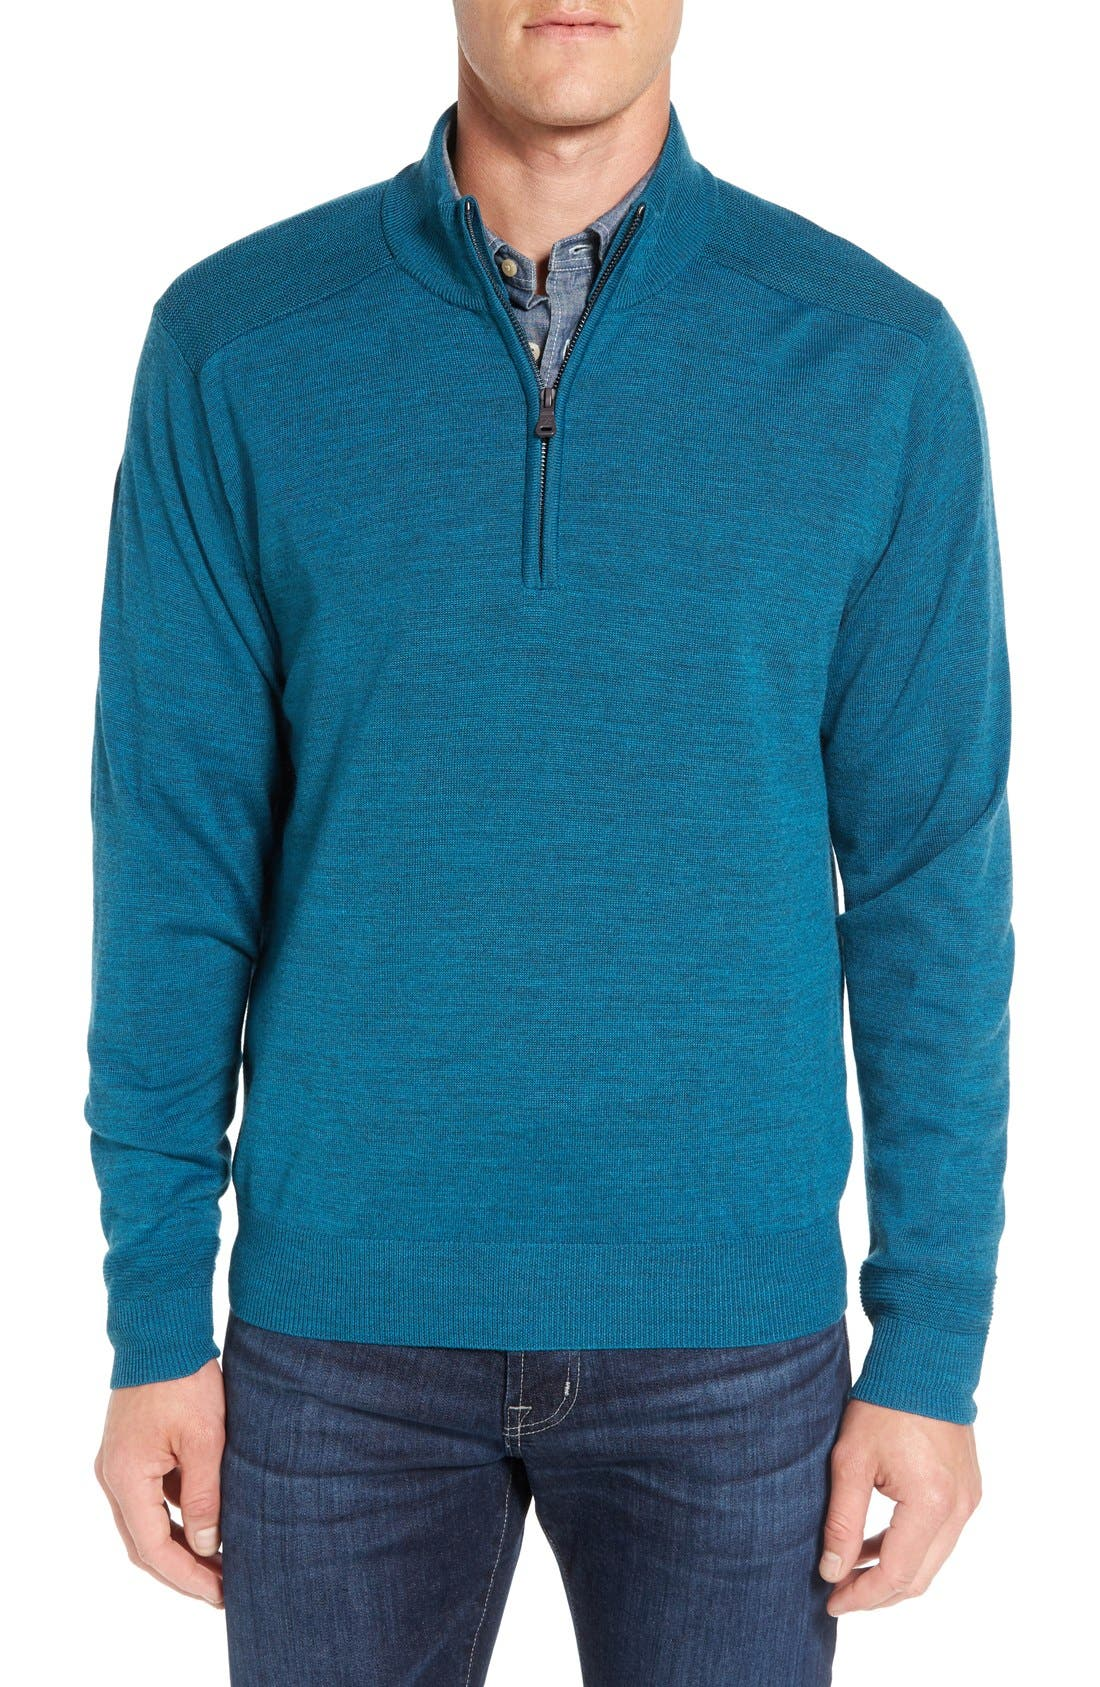 Douglas Quarter Zip Wool Blend Sweater,                         Main,                         color, Mykonos Heather